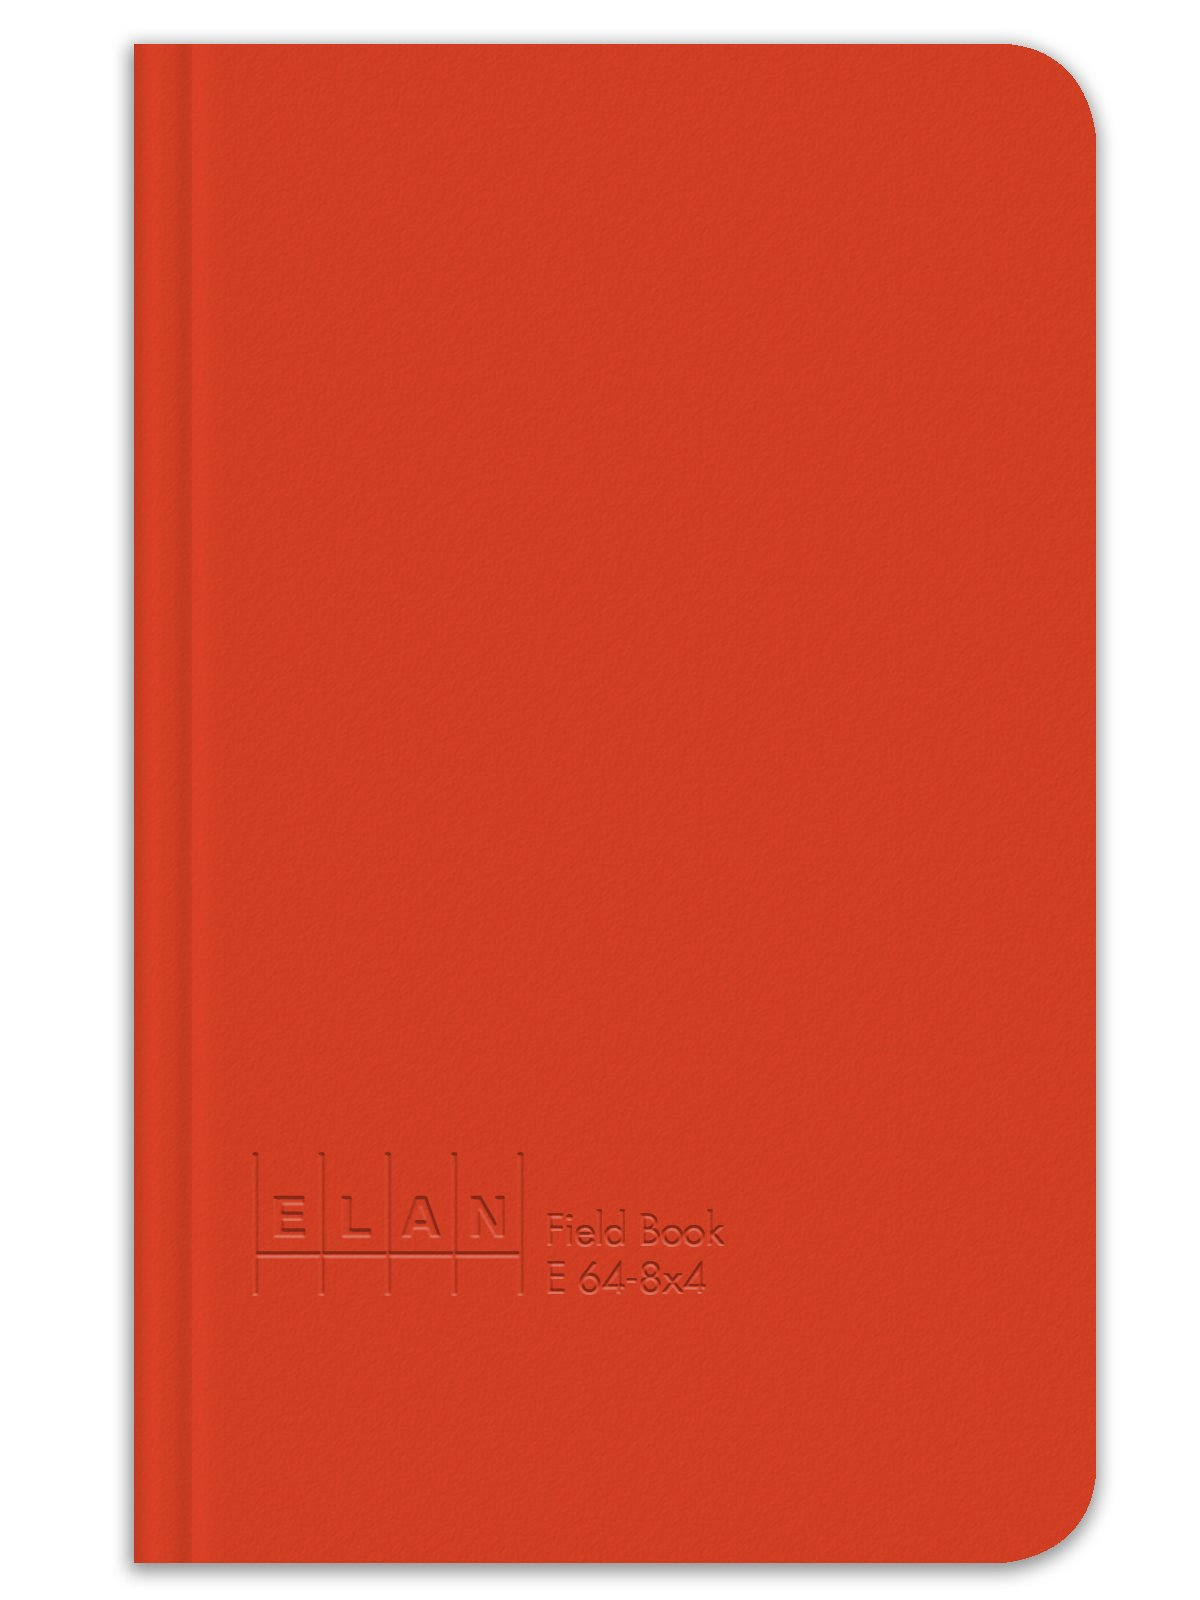 Elan Publishing Company E64-8x4 Field Surveying Book 4 ⅝ x 7 ¼, Bright Orange Cover (Pack of 12)